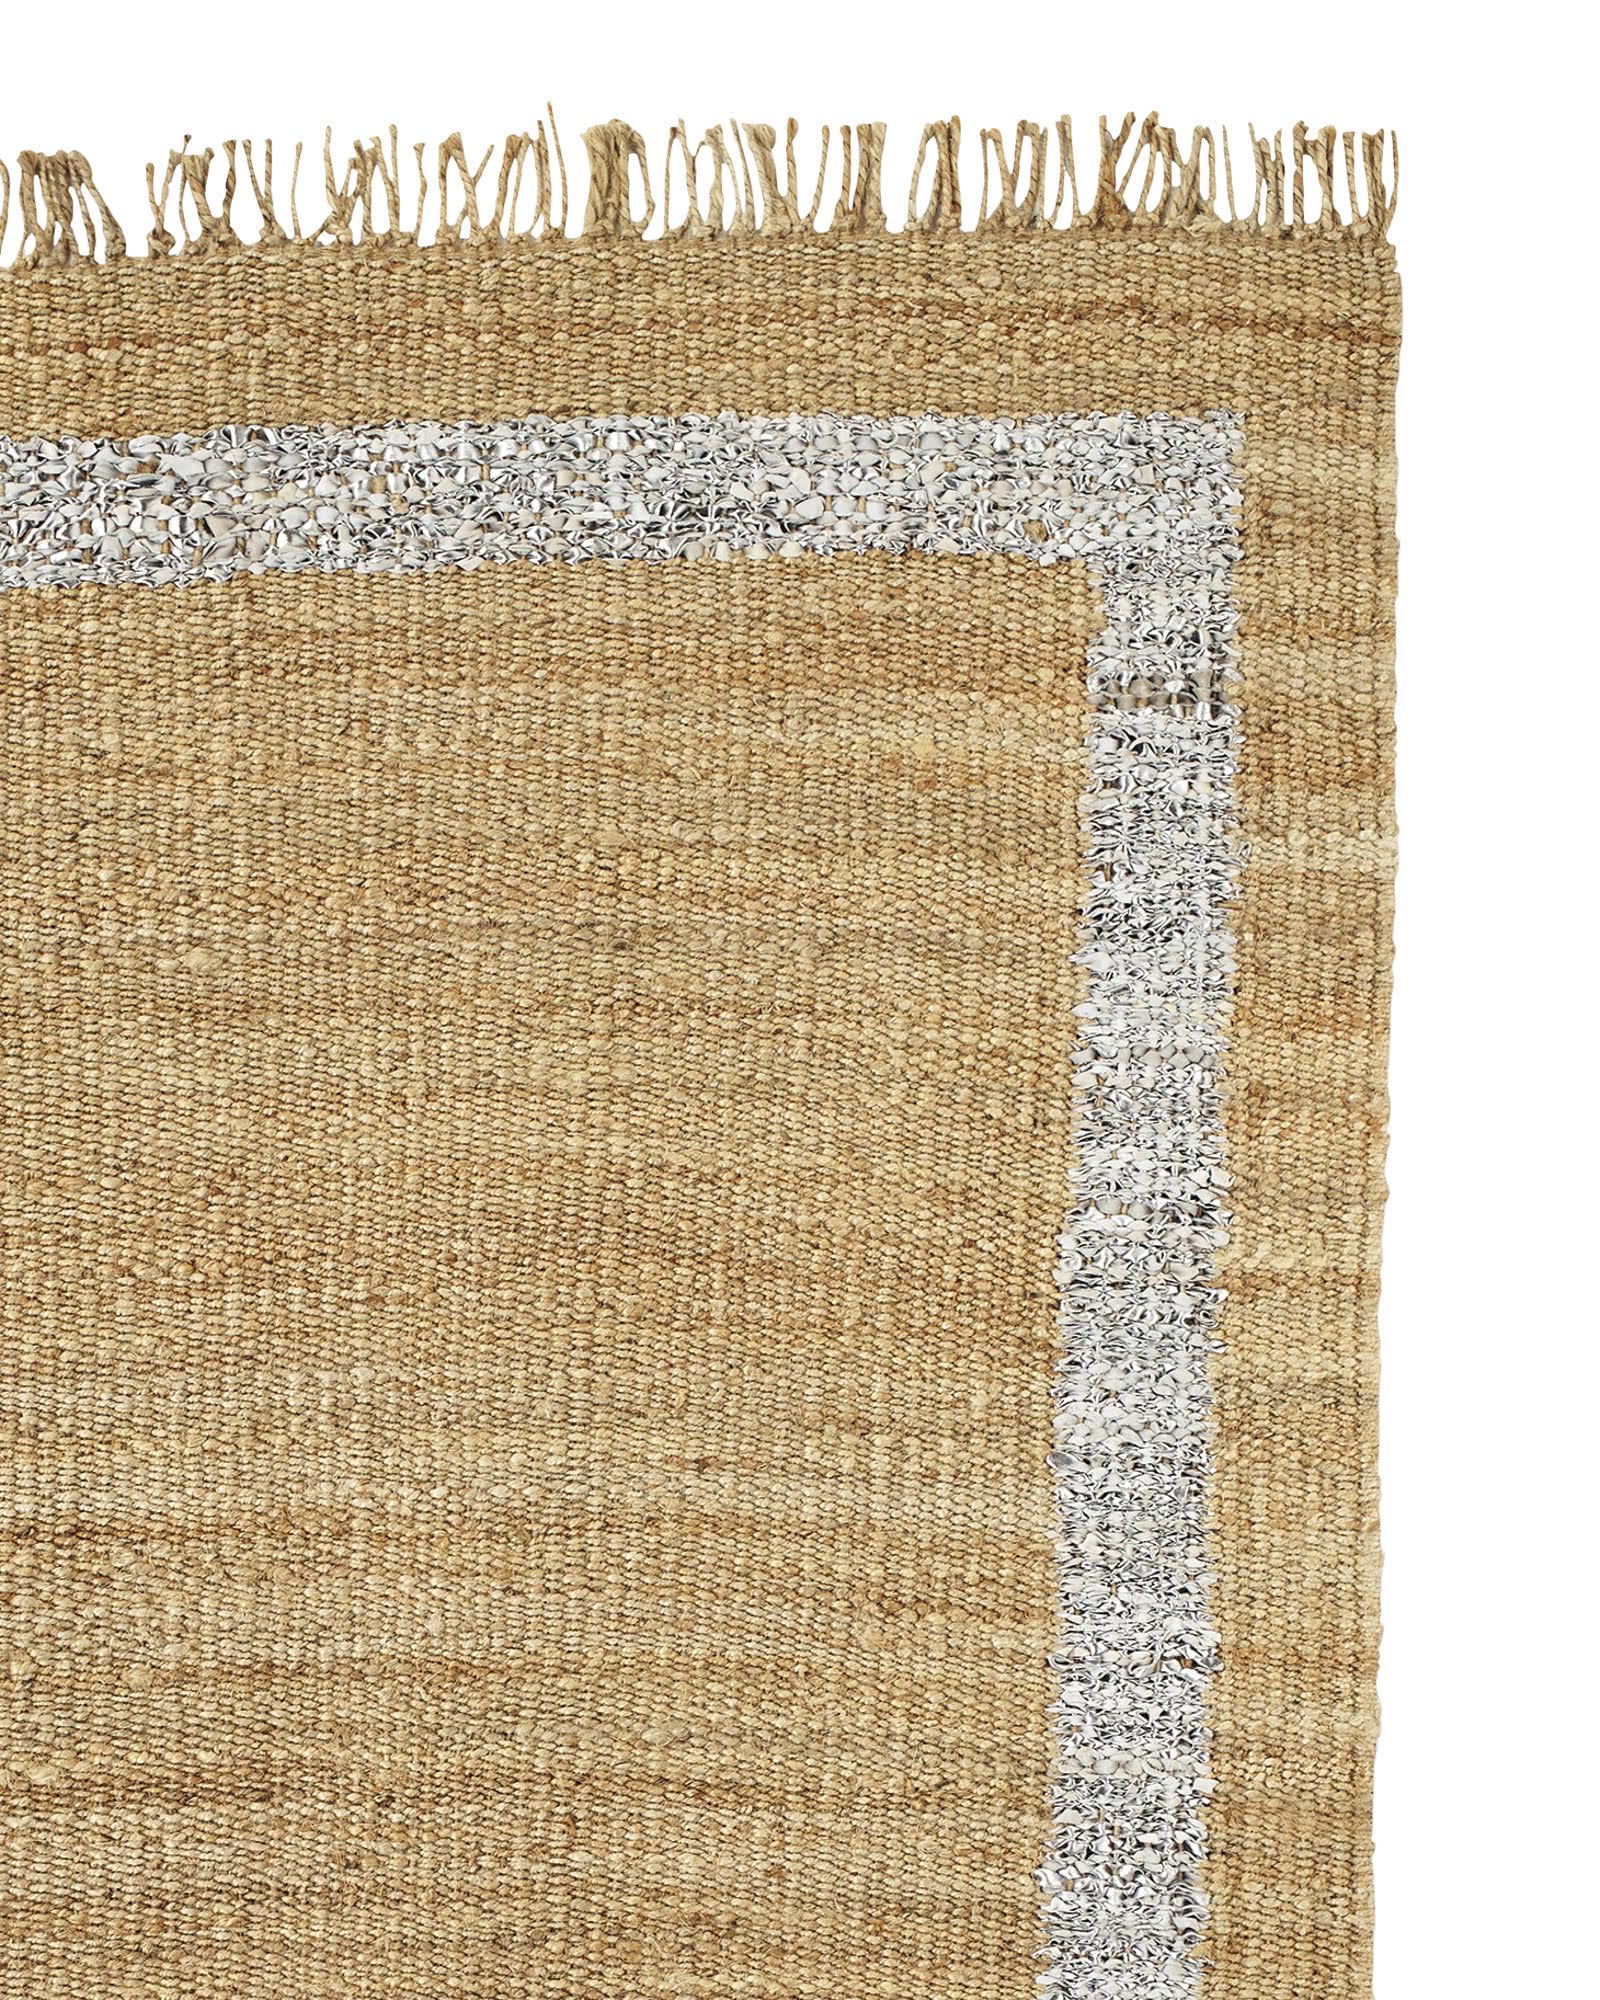 Jute Border Rug, Metallic Silver